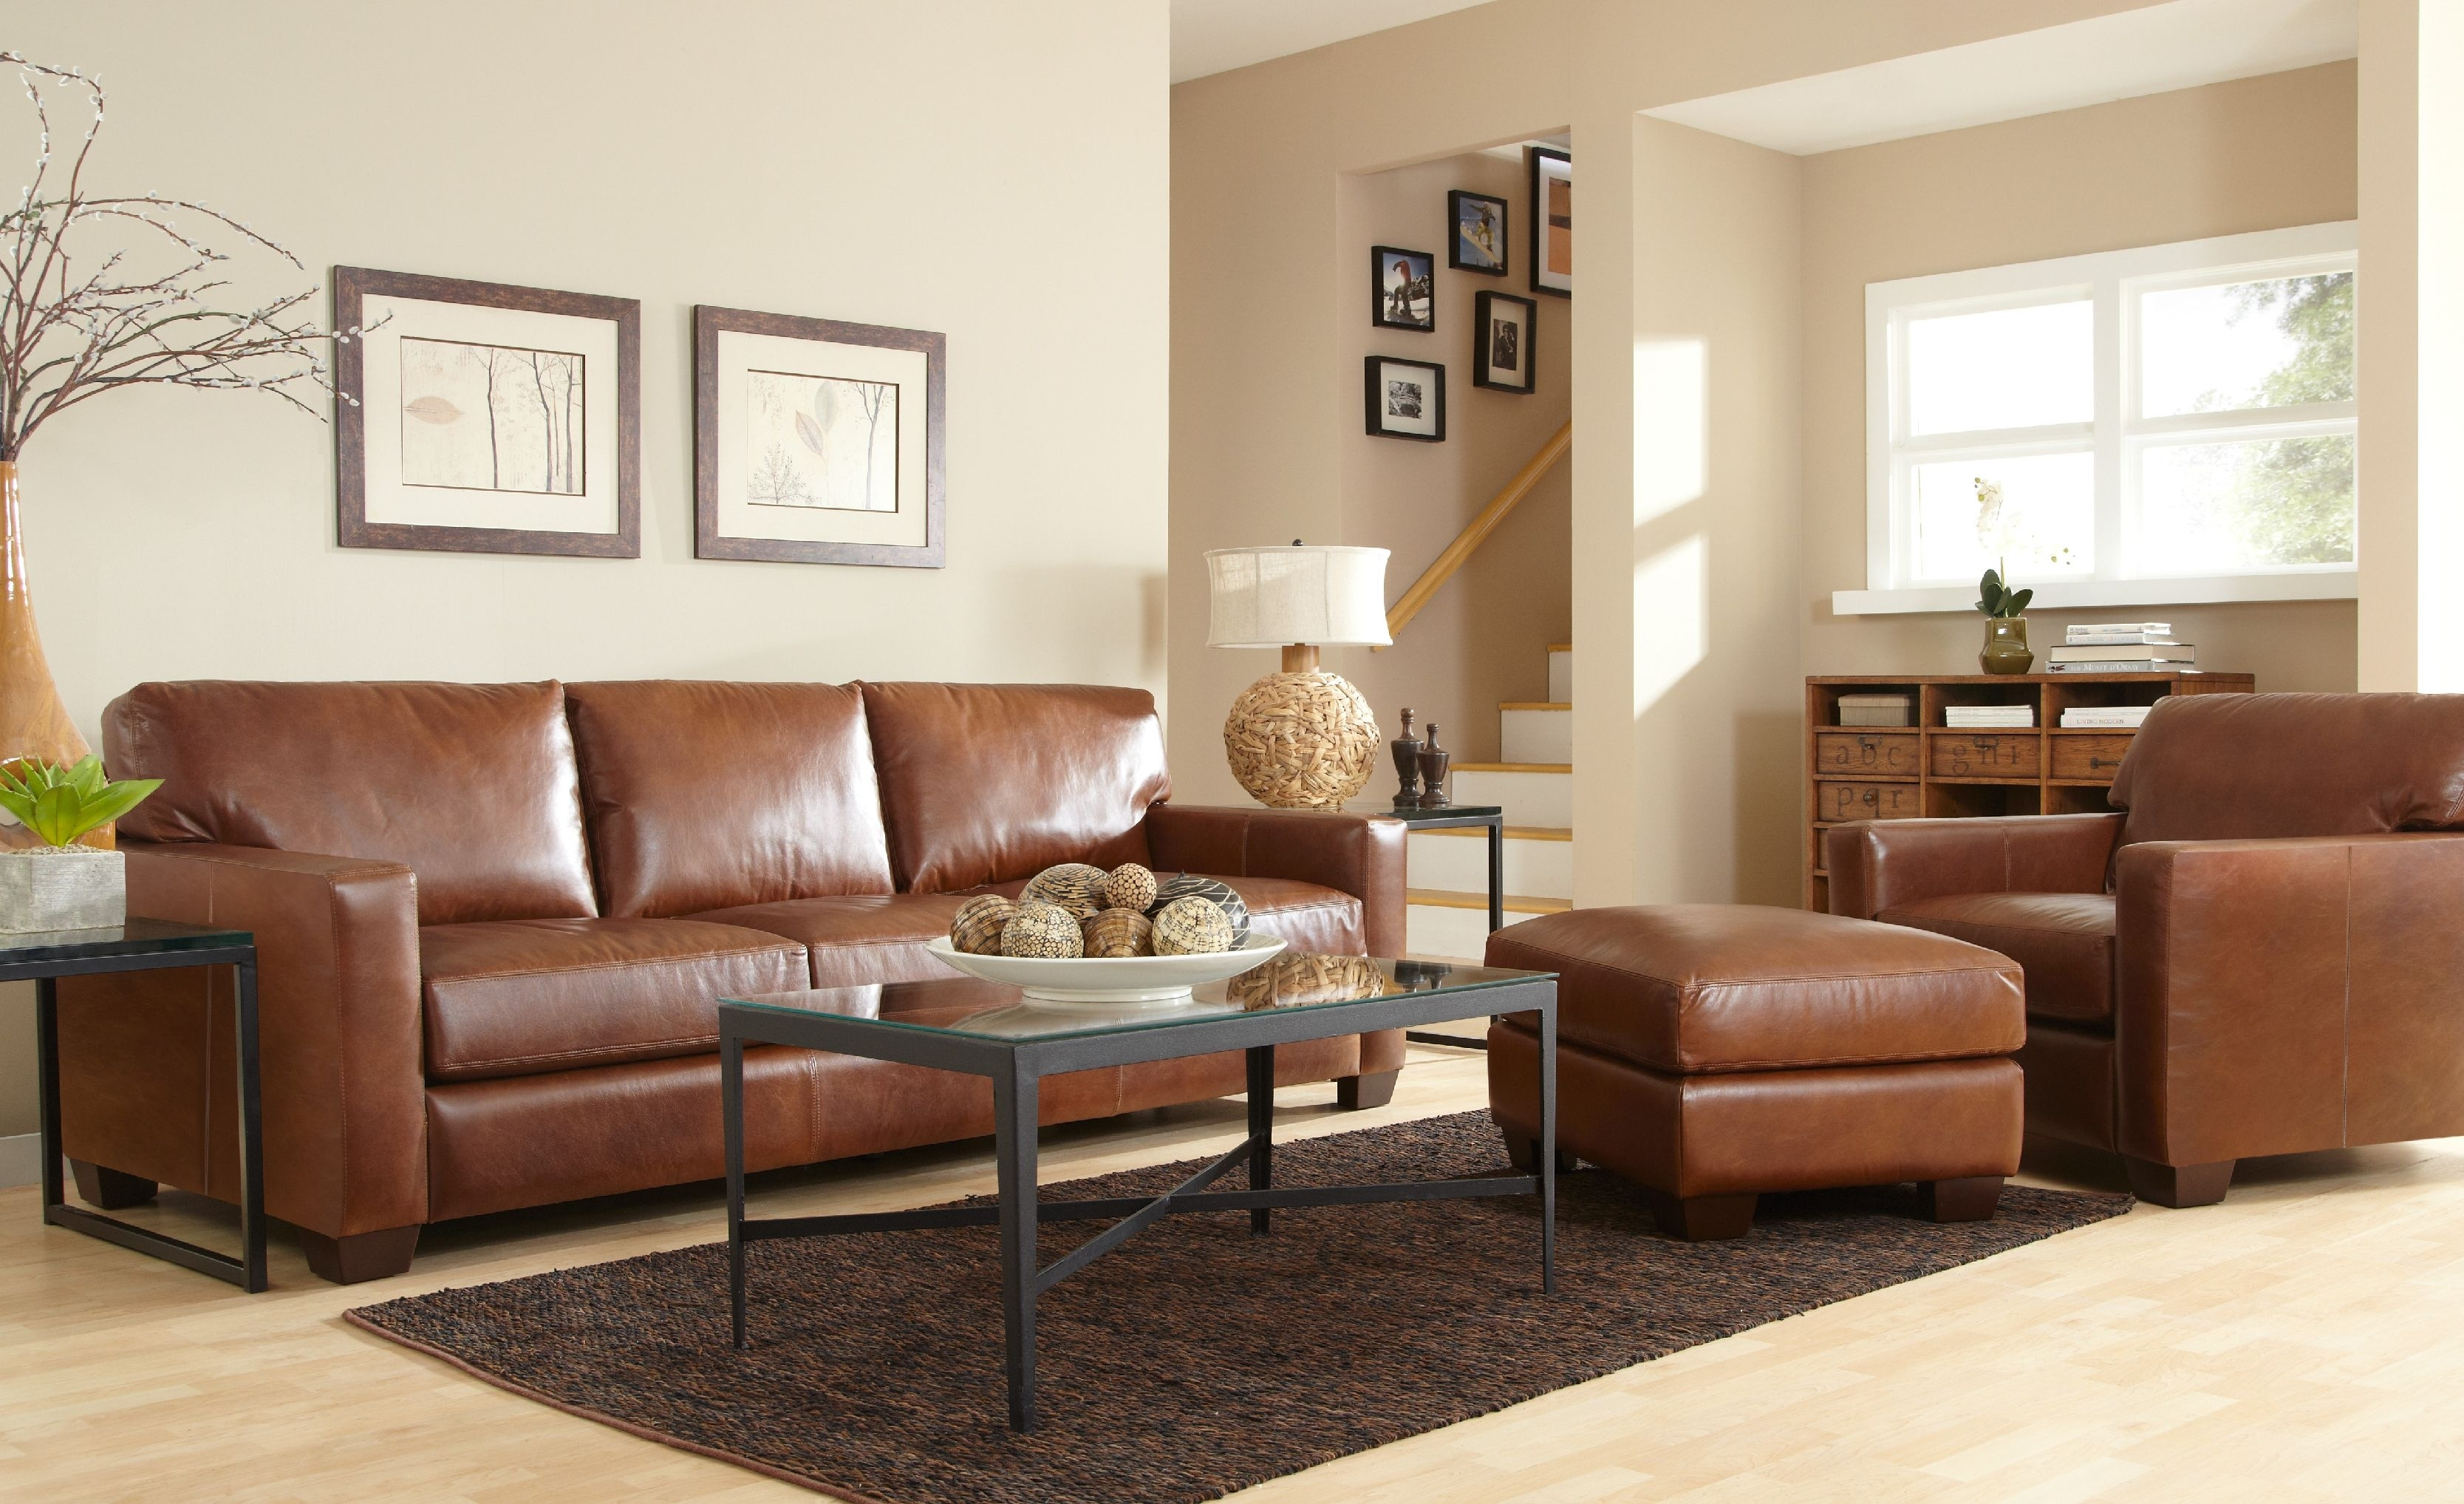 Dillards Sofa – Home Design Ideas And Pictures Inside Dillards Sectional Sofas (View 7 of 10)